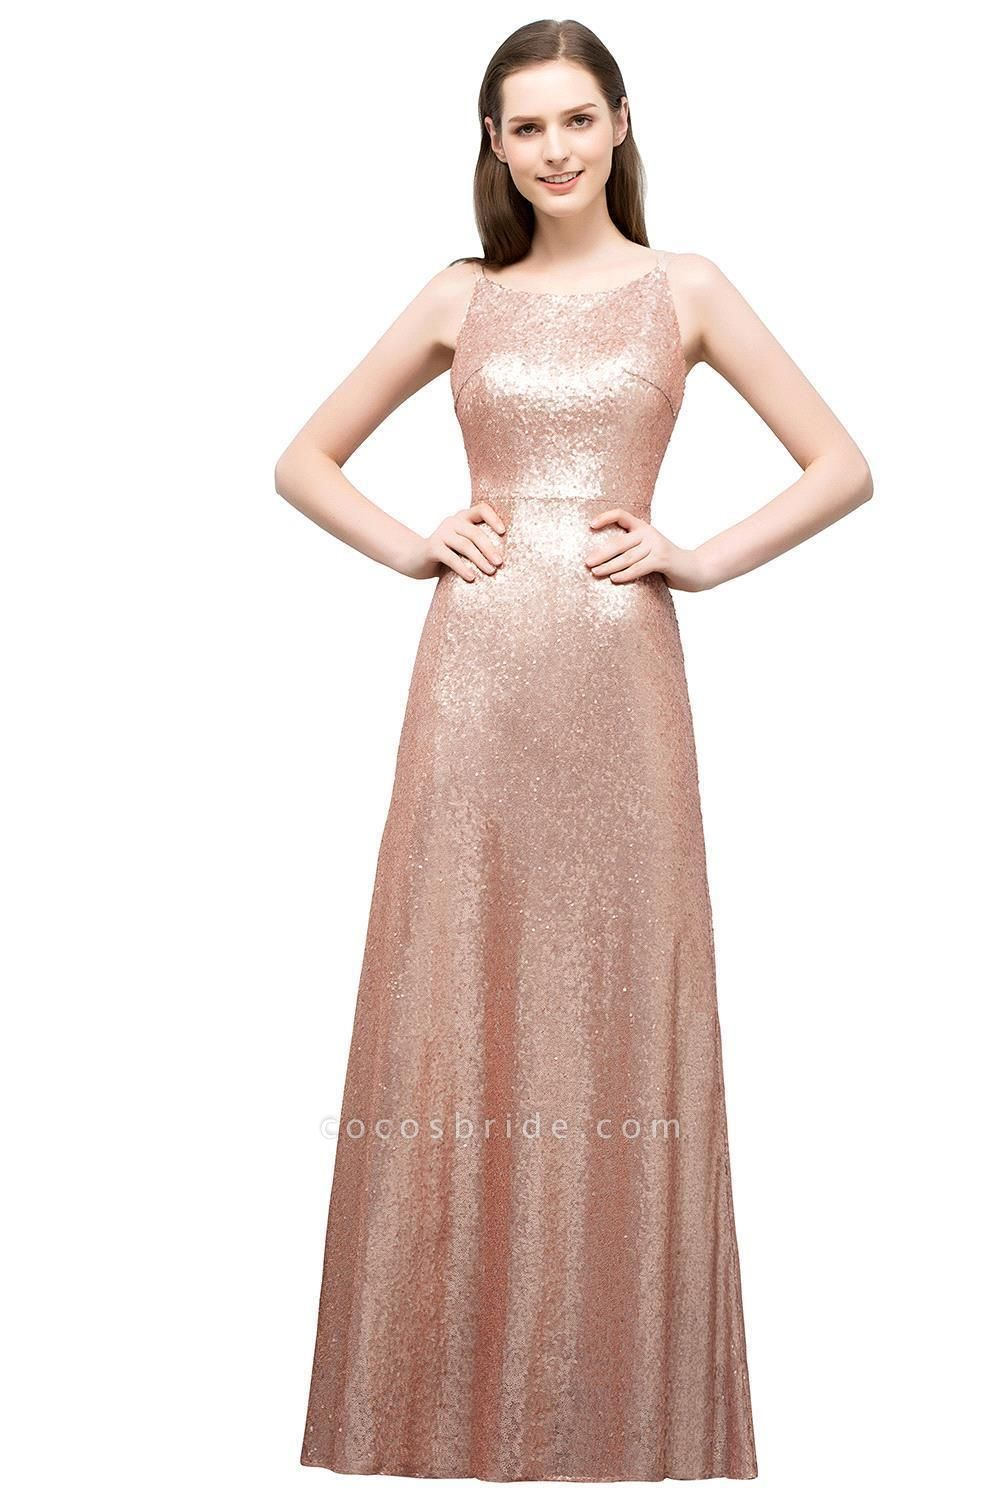 Wonderful Spaghetti Straps Sequined A-line Evening Dress